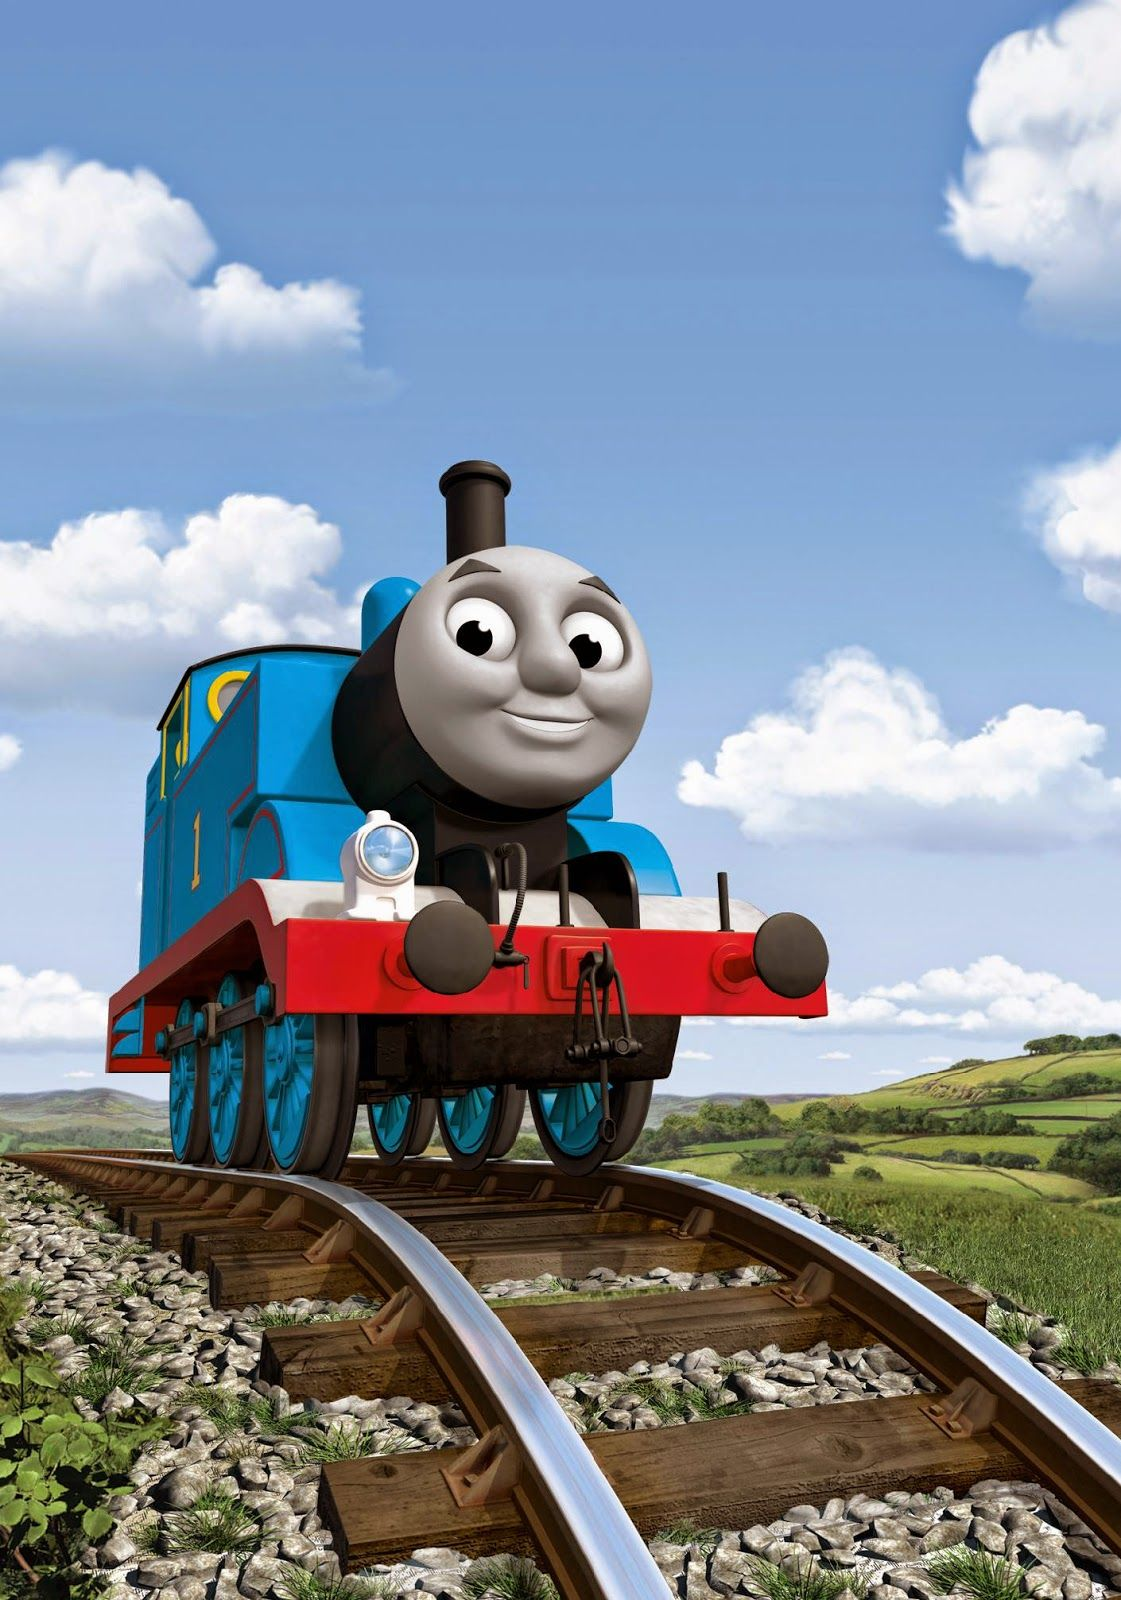 Thomas and Friends Wallpaper HD | HD Wallpapers | Pinterest | Hd wallpaper and Wallpaper